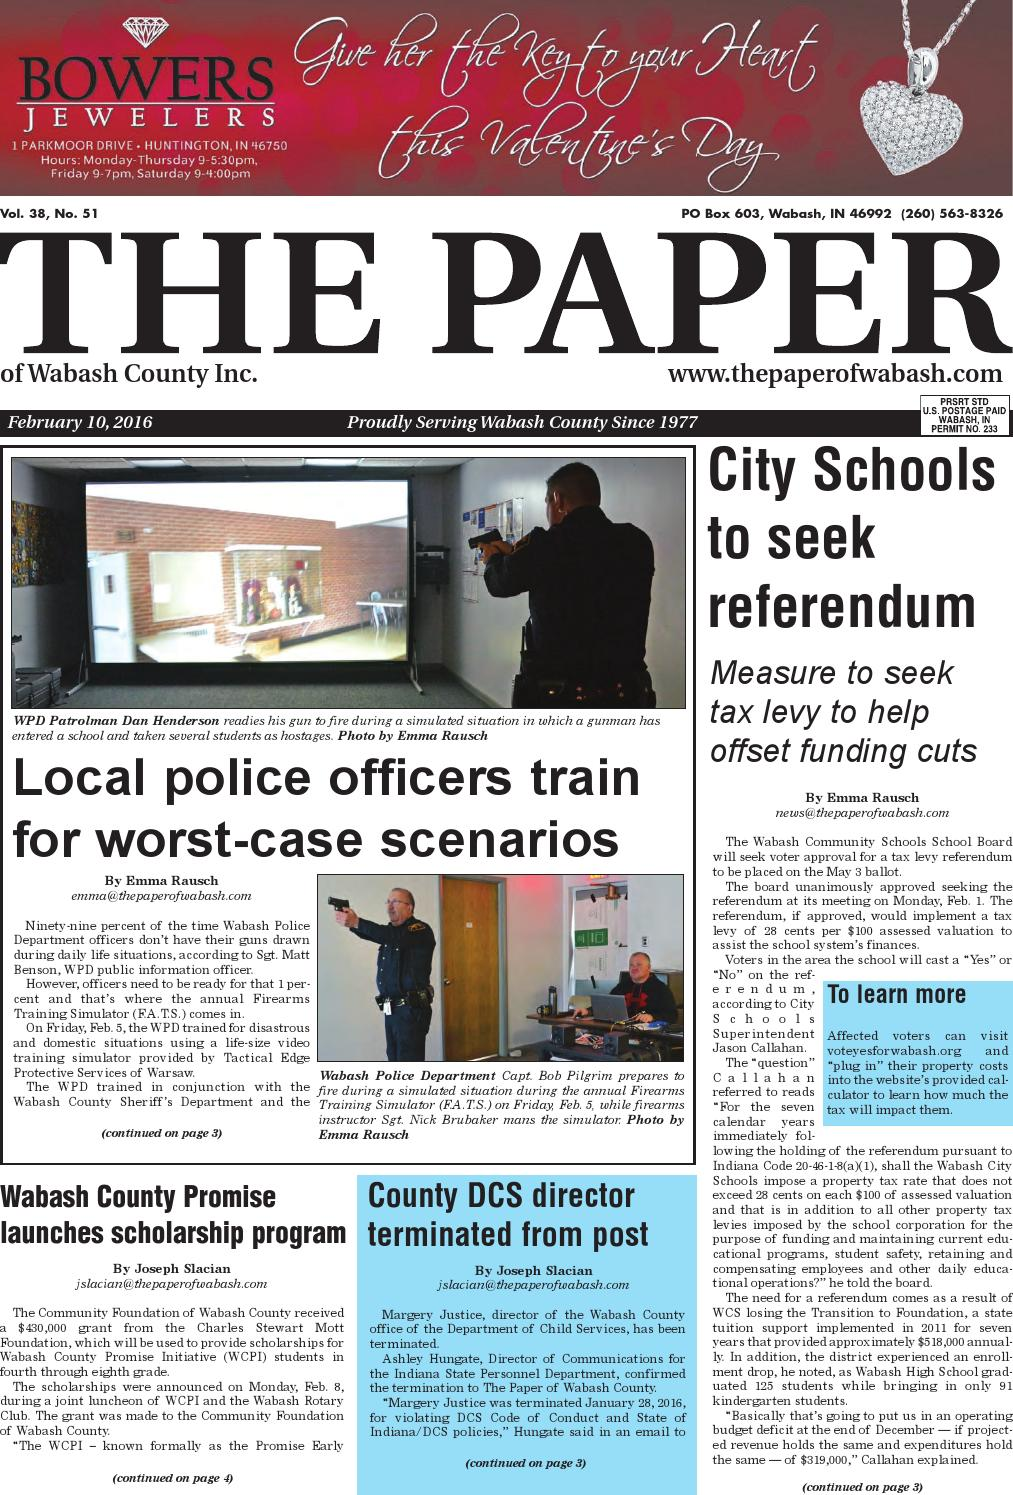 the paper of wabash county feb 10 2016 issue